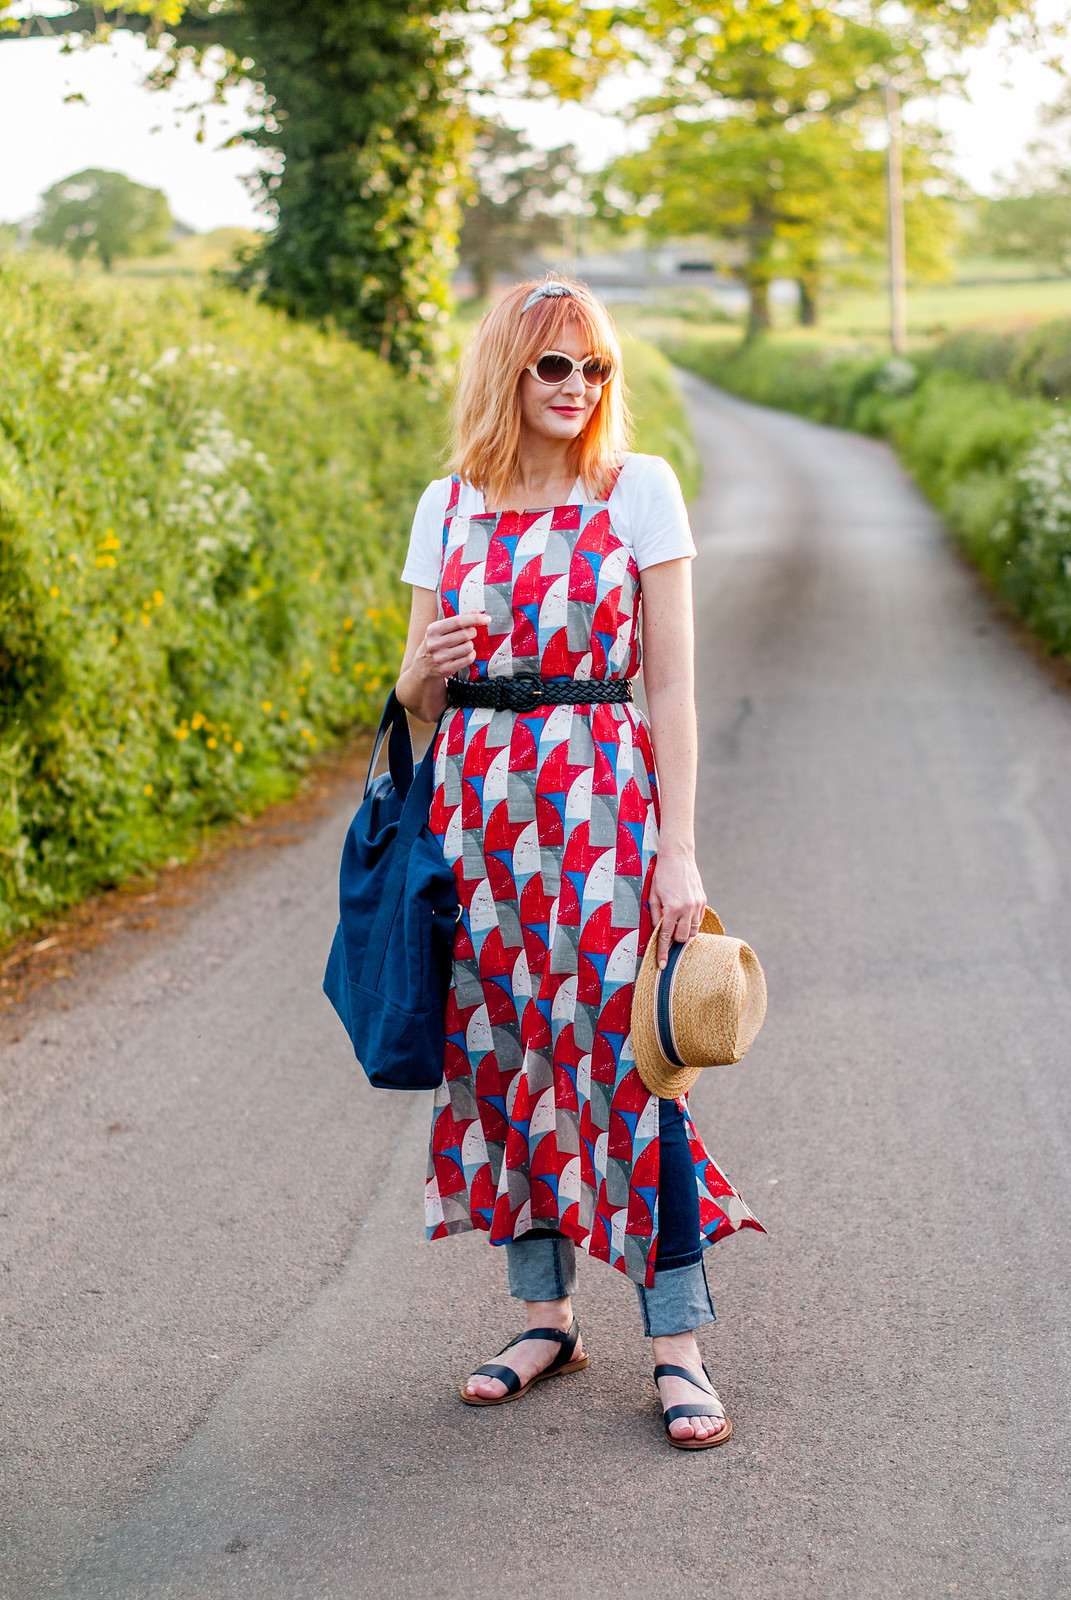 Summer dressing: Strappy printed maxi dress over jeans and white t-shirt retro styling preppy style | Not Dressed As Lamb, over 40 blog